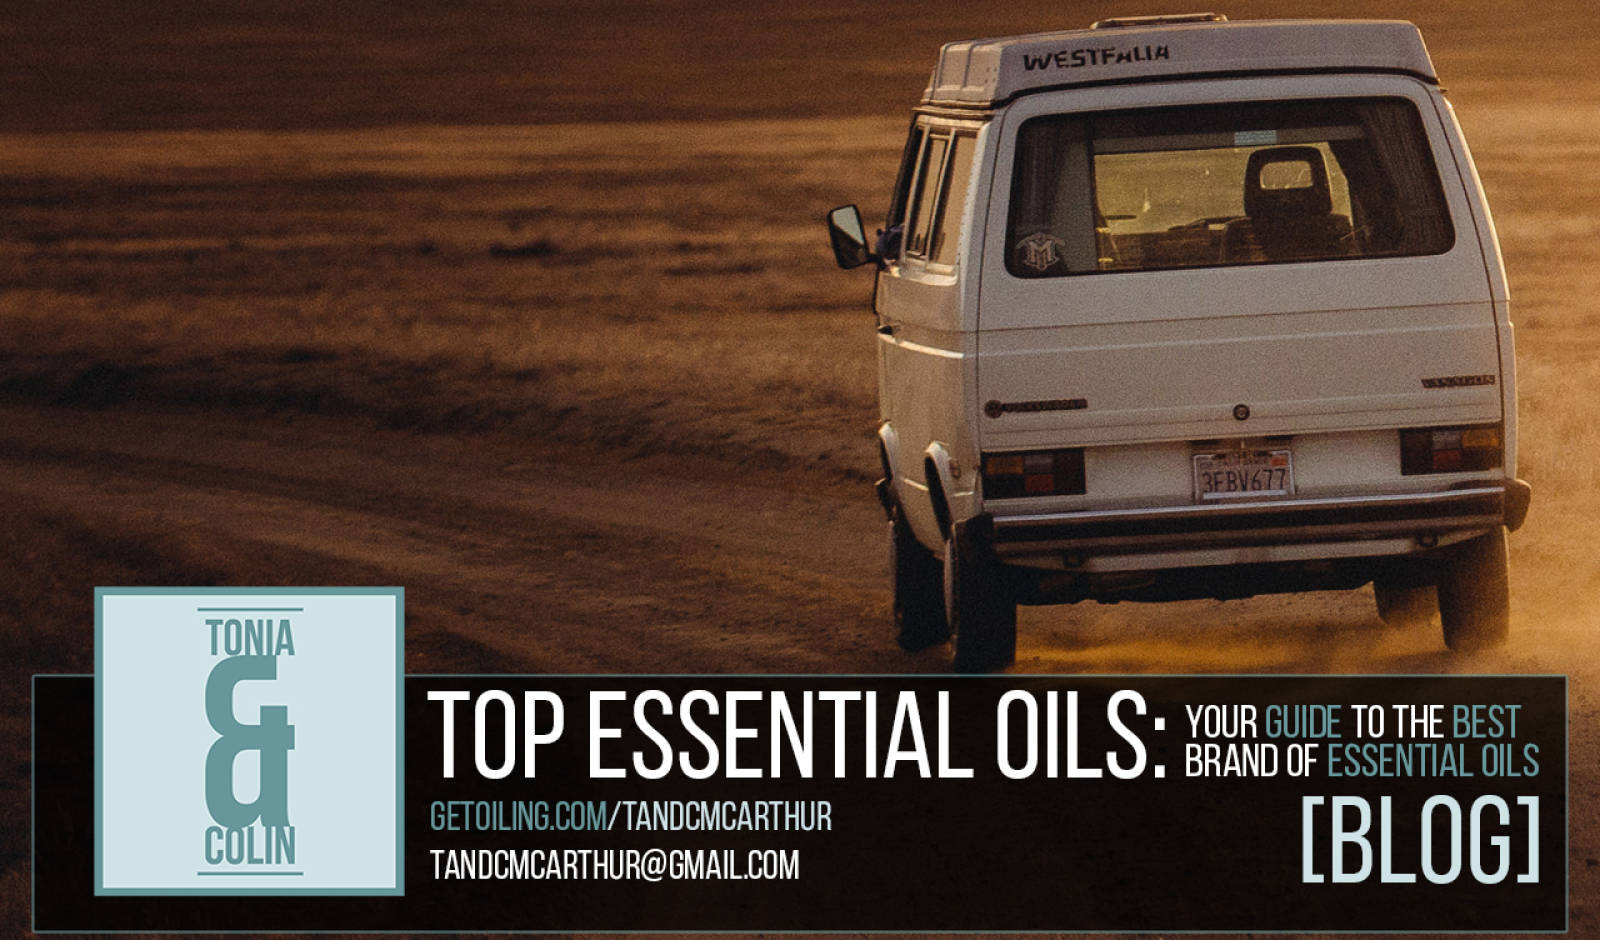 Top Essential Oils: Your Guide to the Best Brand of Essential Oils